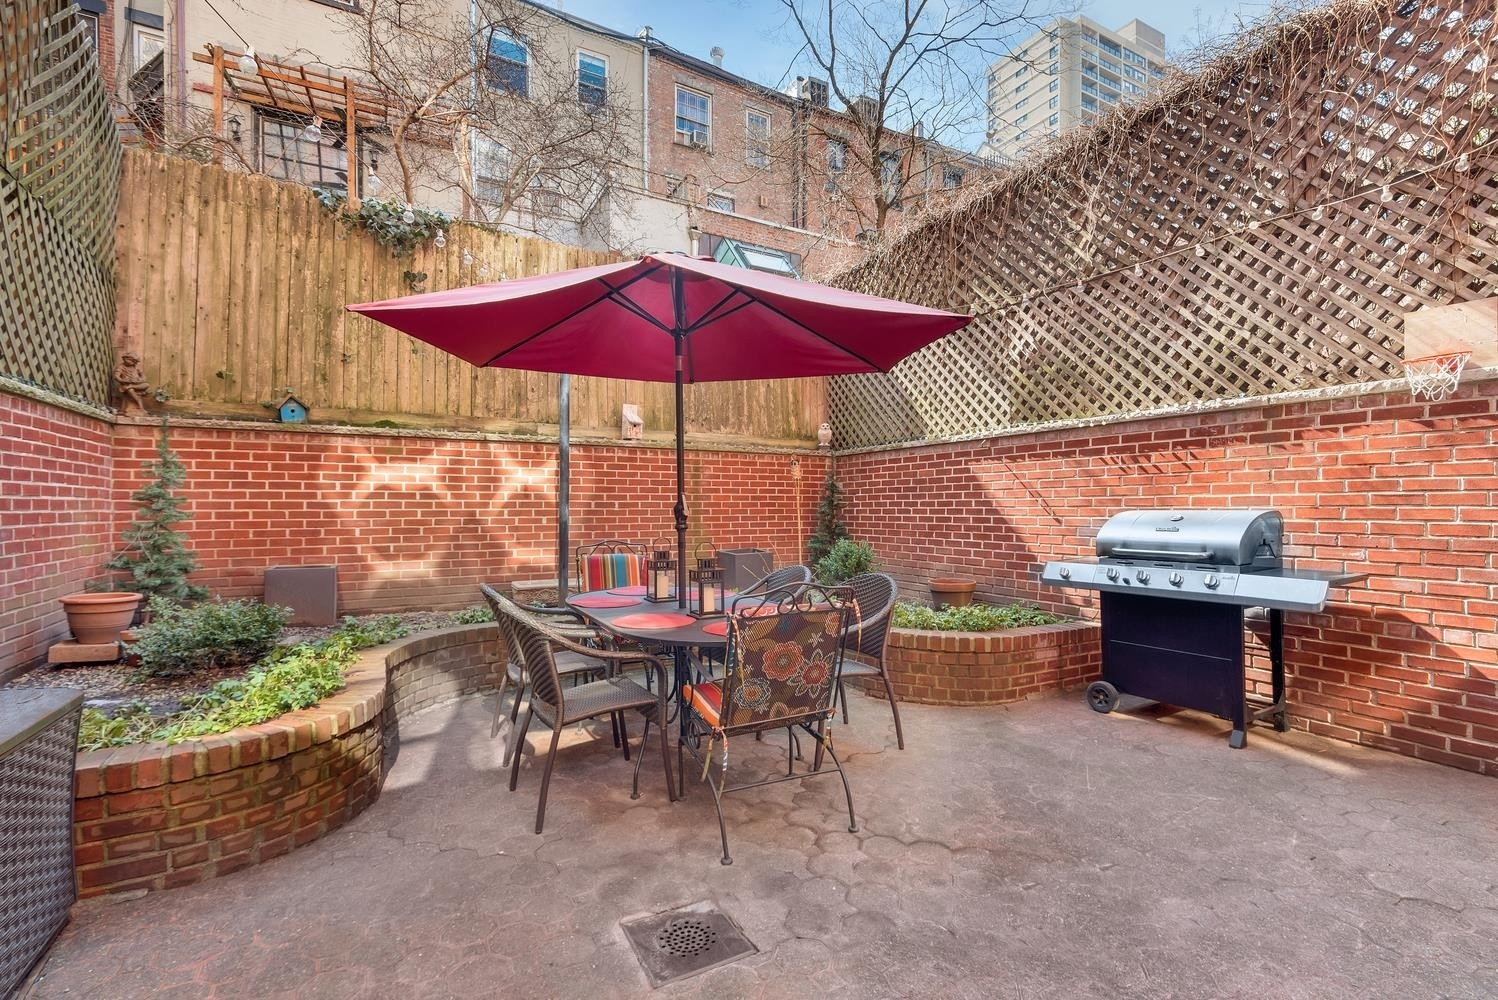 Property à 28 W 96TH ST , 1 Upper West Side, New York, NY 10025